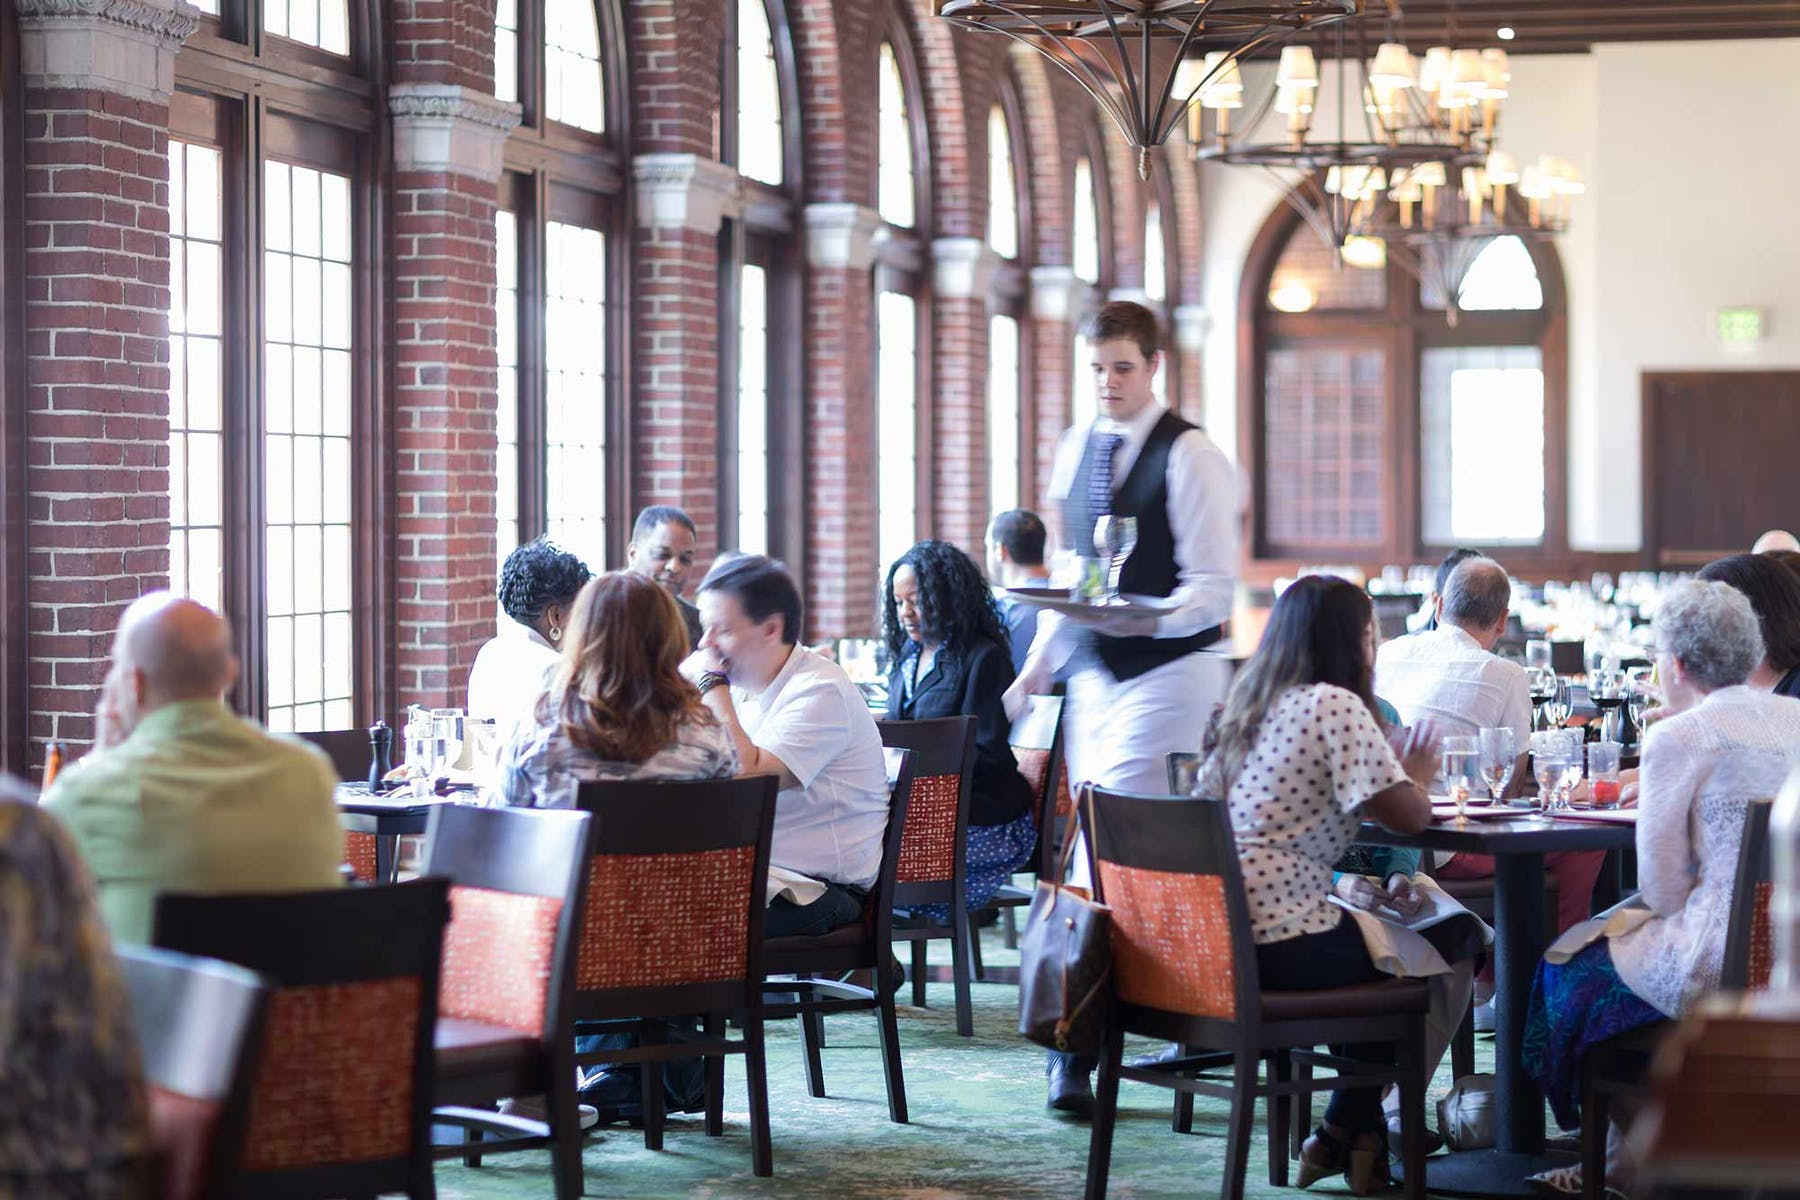 Lunch service in the American Bounty restaurant, on the campus of The Culinary Institute of America in Hyde Park, NY.